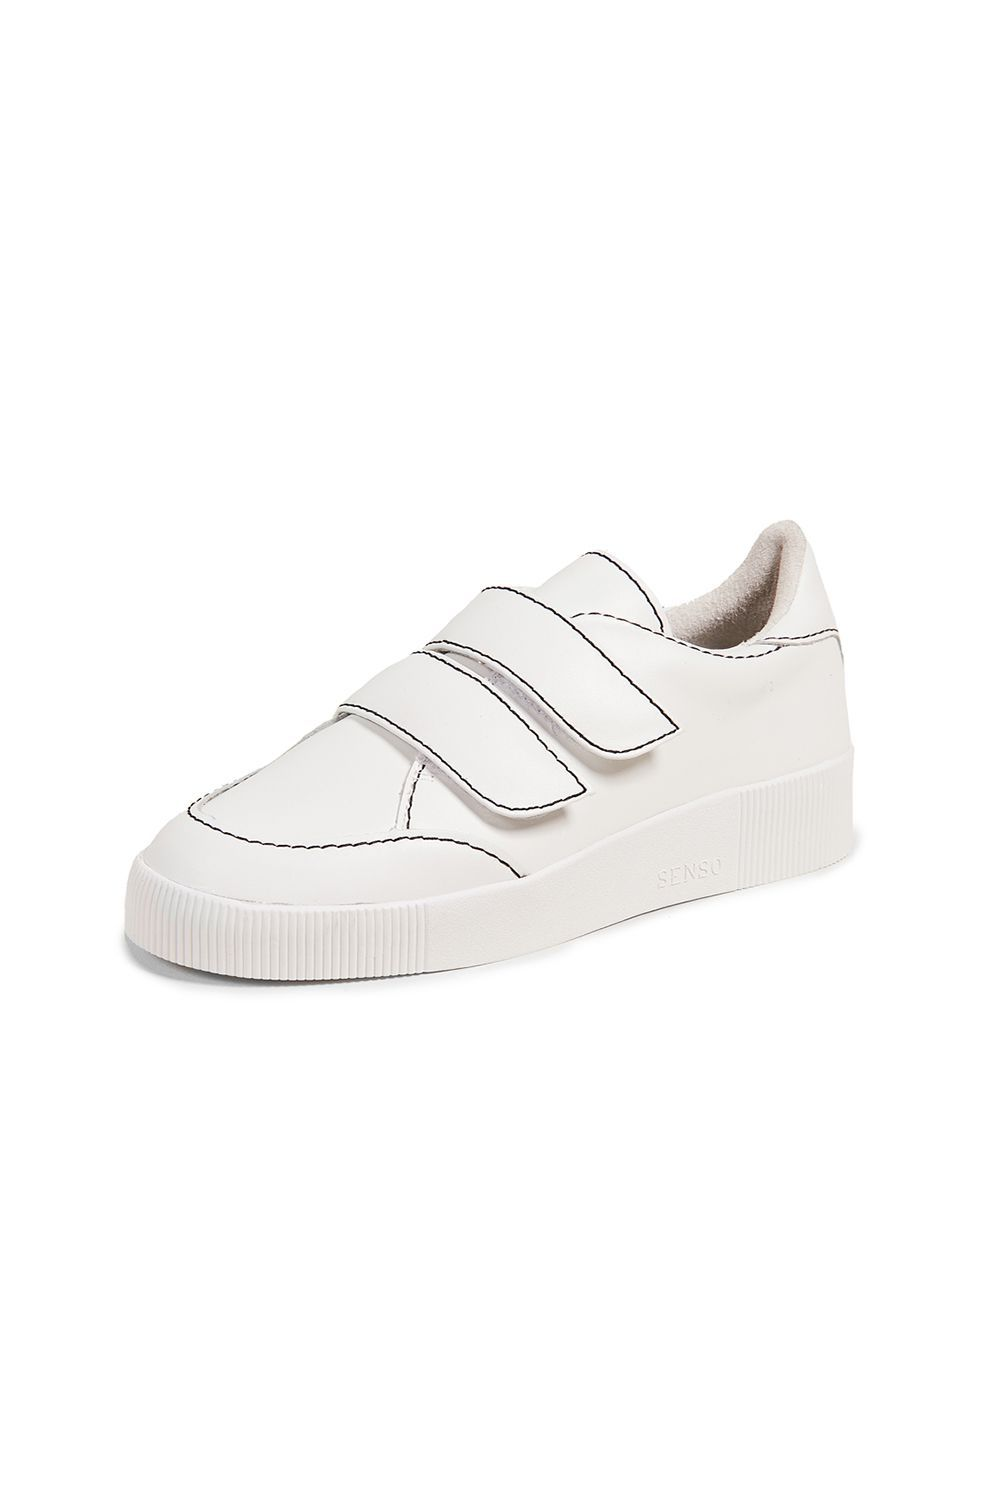 Adrianna Sneakers Senso shopbop.com $199.00 SHOP IT Velcro sneakers are cool again, and that's not a surprise if they look like this pair. The colored topstitching adds an artsy edge to the plain kicks and makes the straps pop against the shoes.